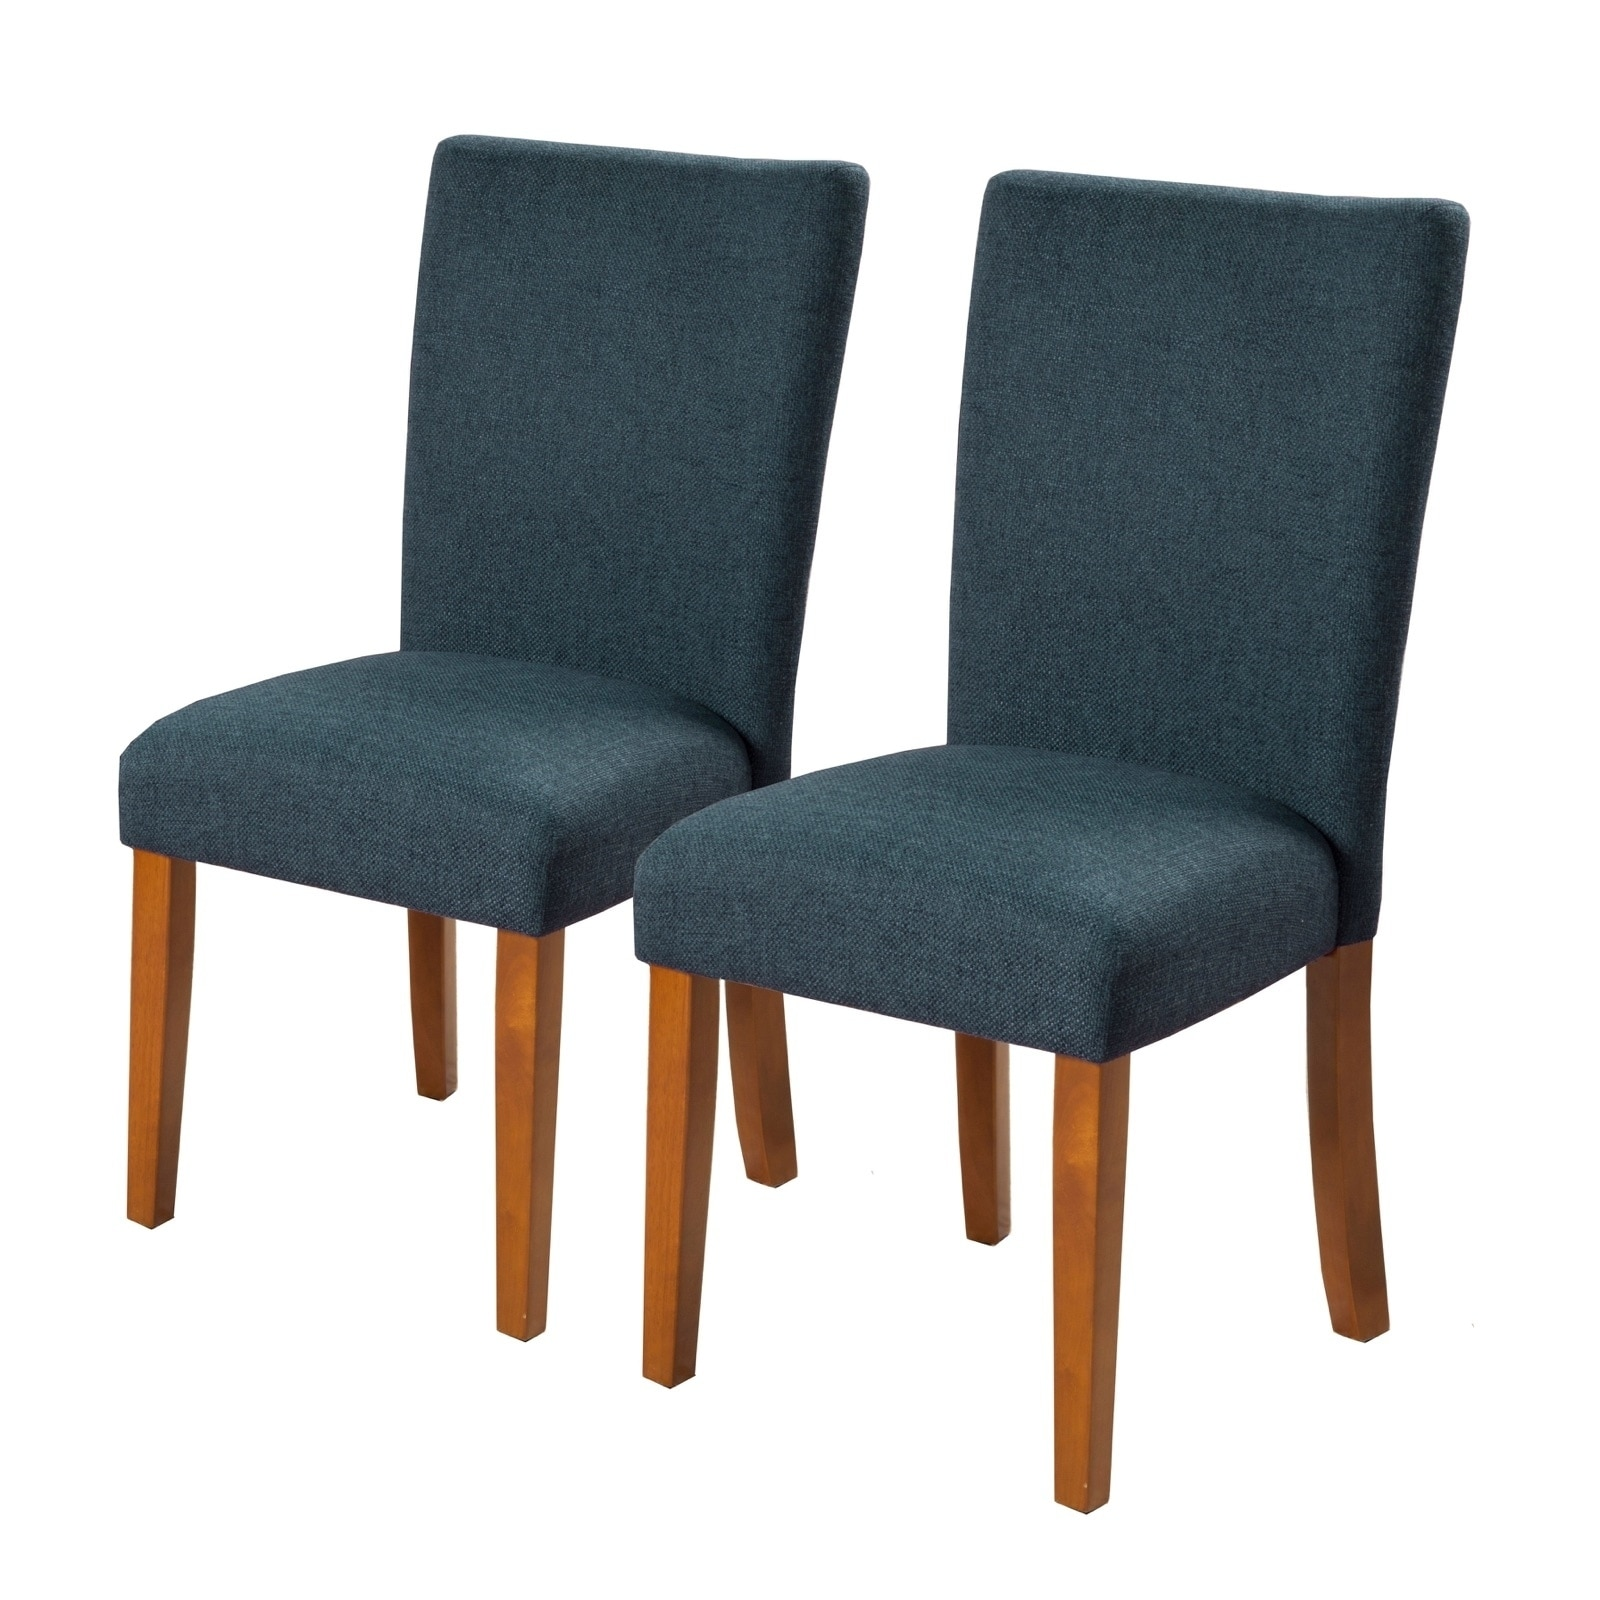 Fabric Upholstered Parson Dining Chair With Wooden Legs Navy Blue And Brown Set Of Two On Sale Overstock 28394606